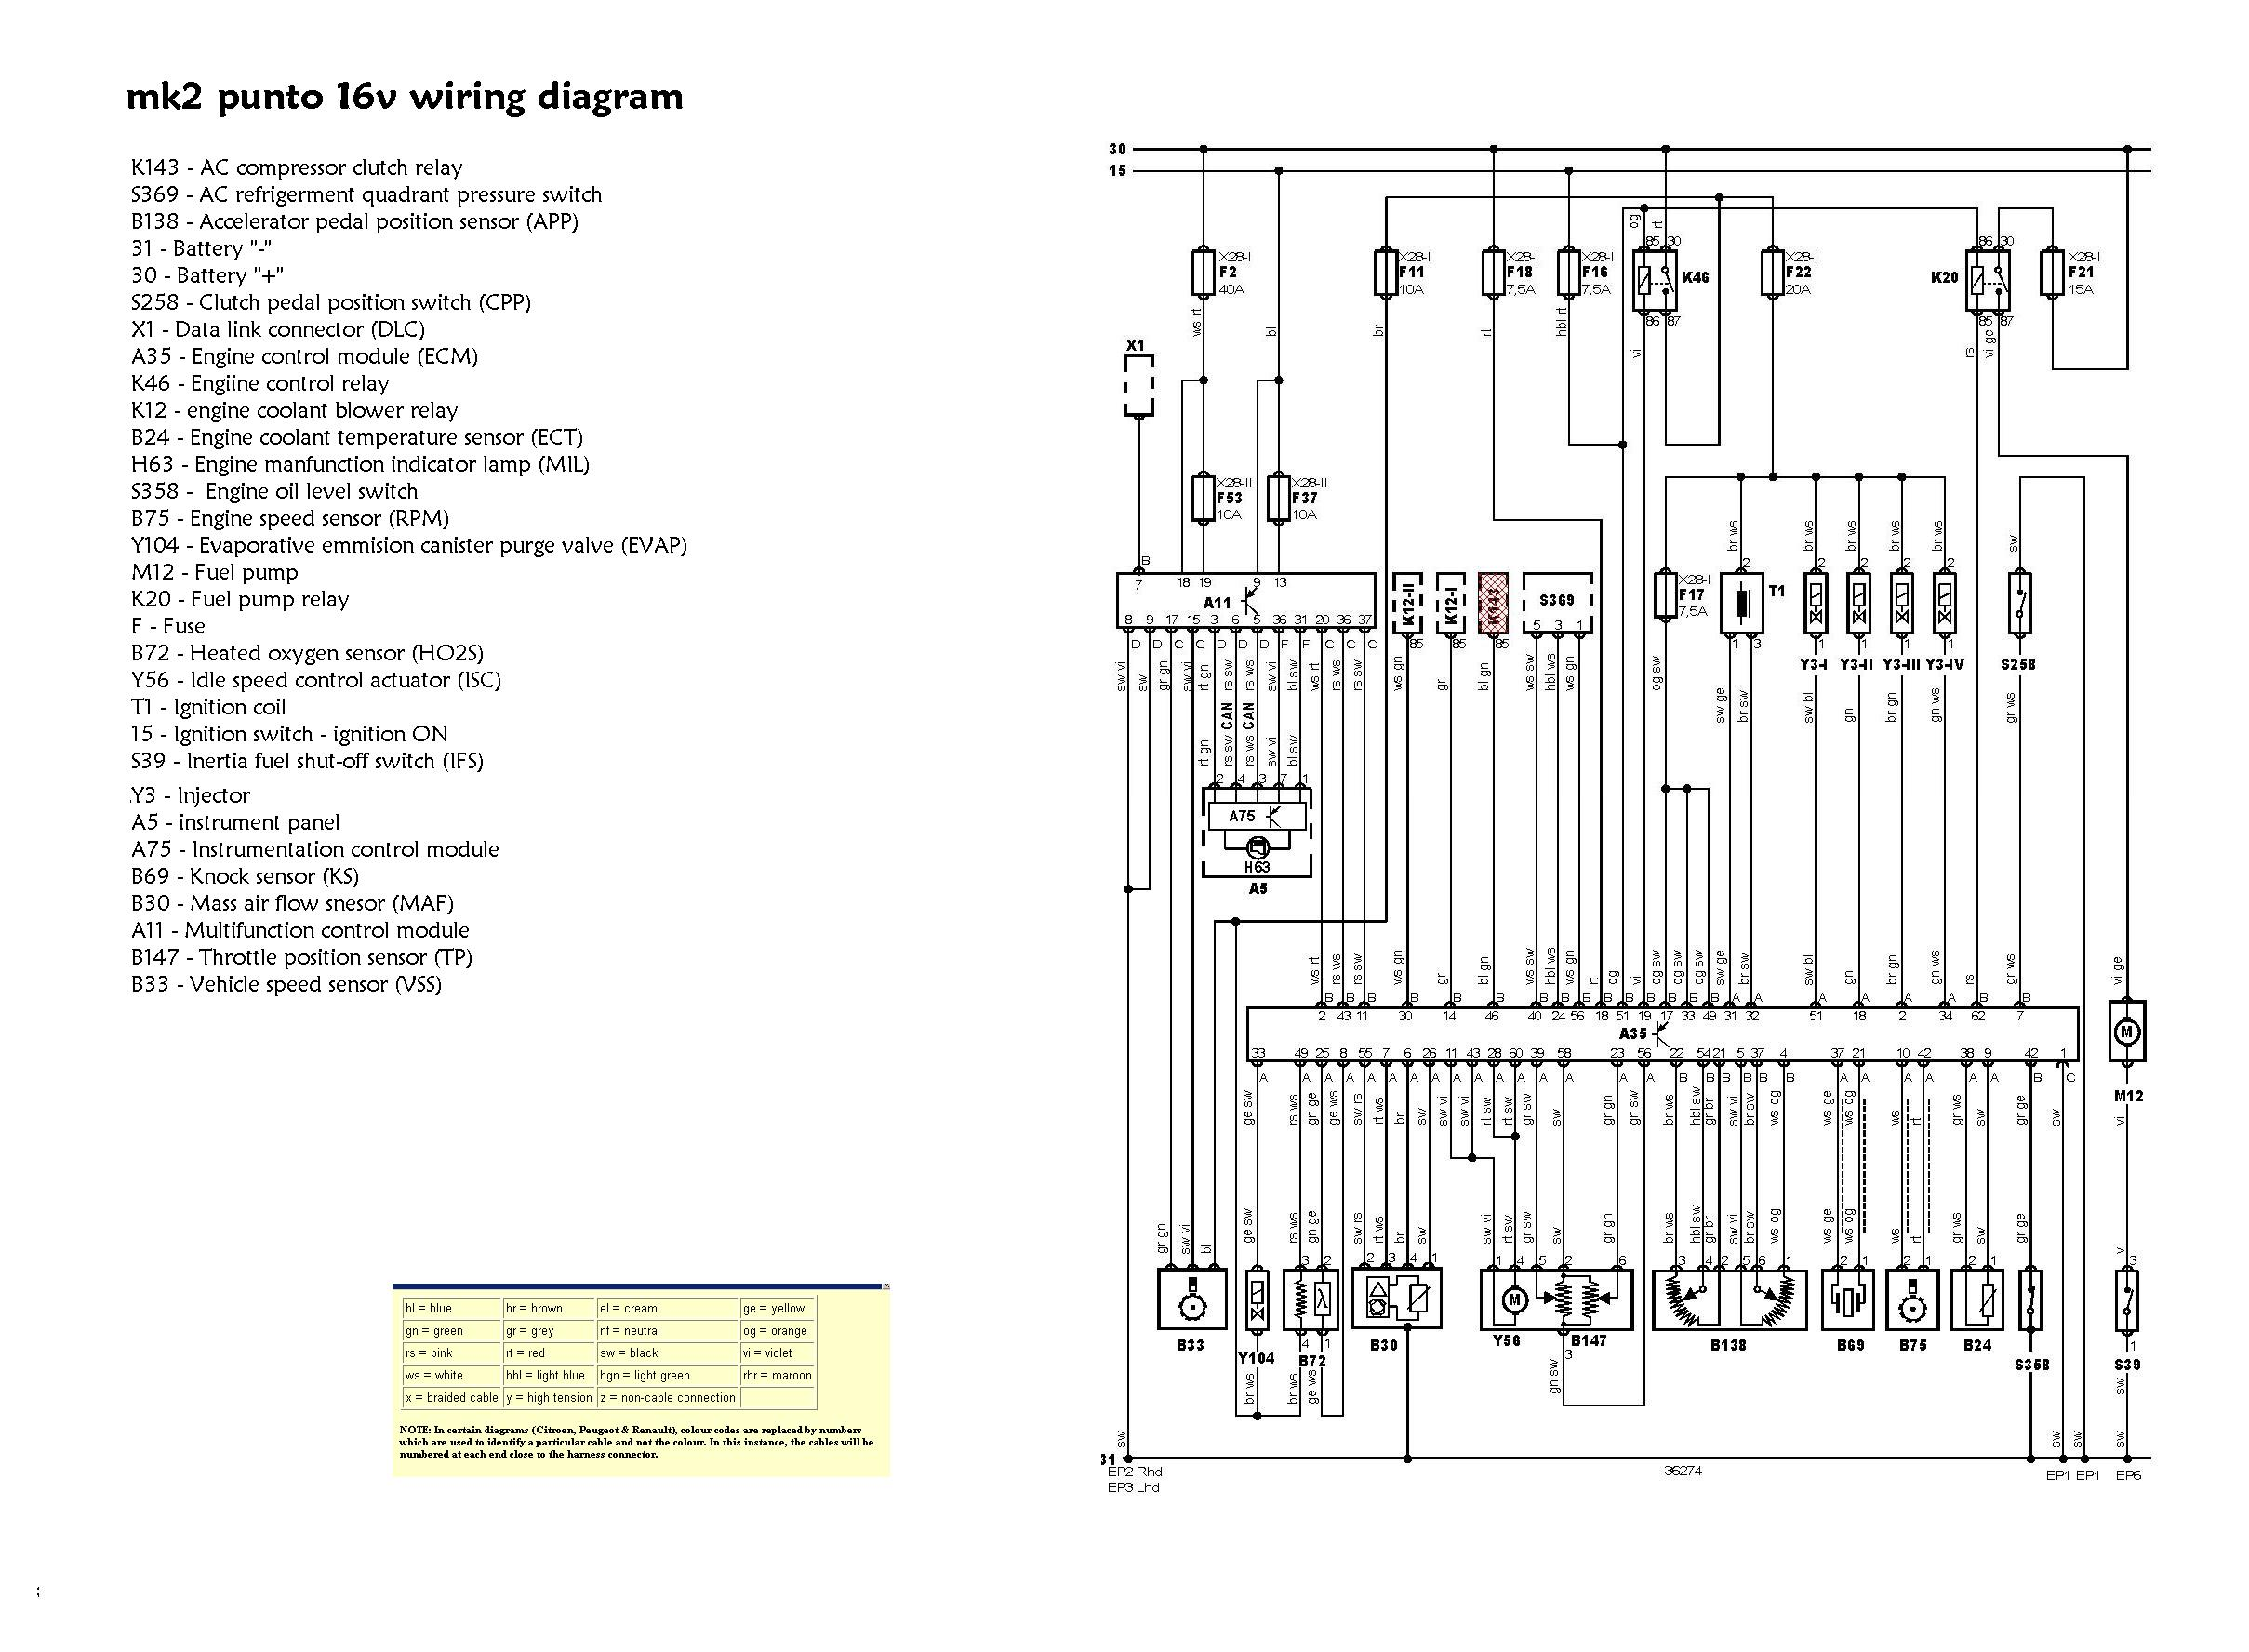 [DIAGRAM] Fiat Punto Radio Wiring Diagram FULL Version HD